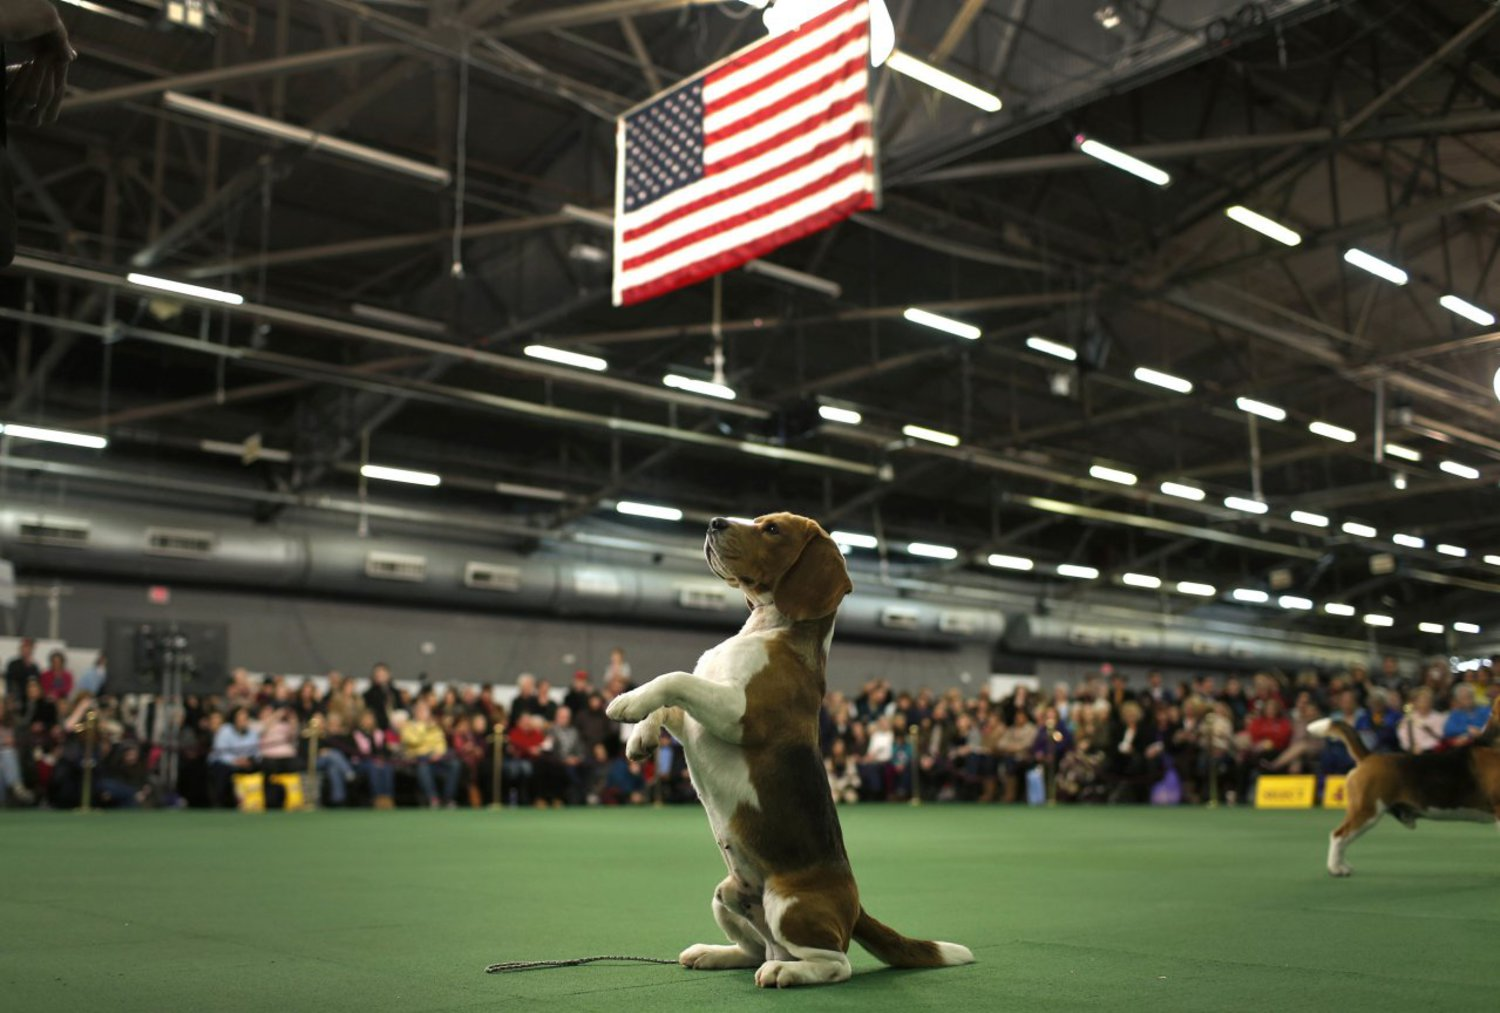 Thunder, a Beagle from Bangkok, Thailand, rises up on its hind legs in the ring during judging in the Hound Group at the Westminster show on February 16, 2015.